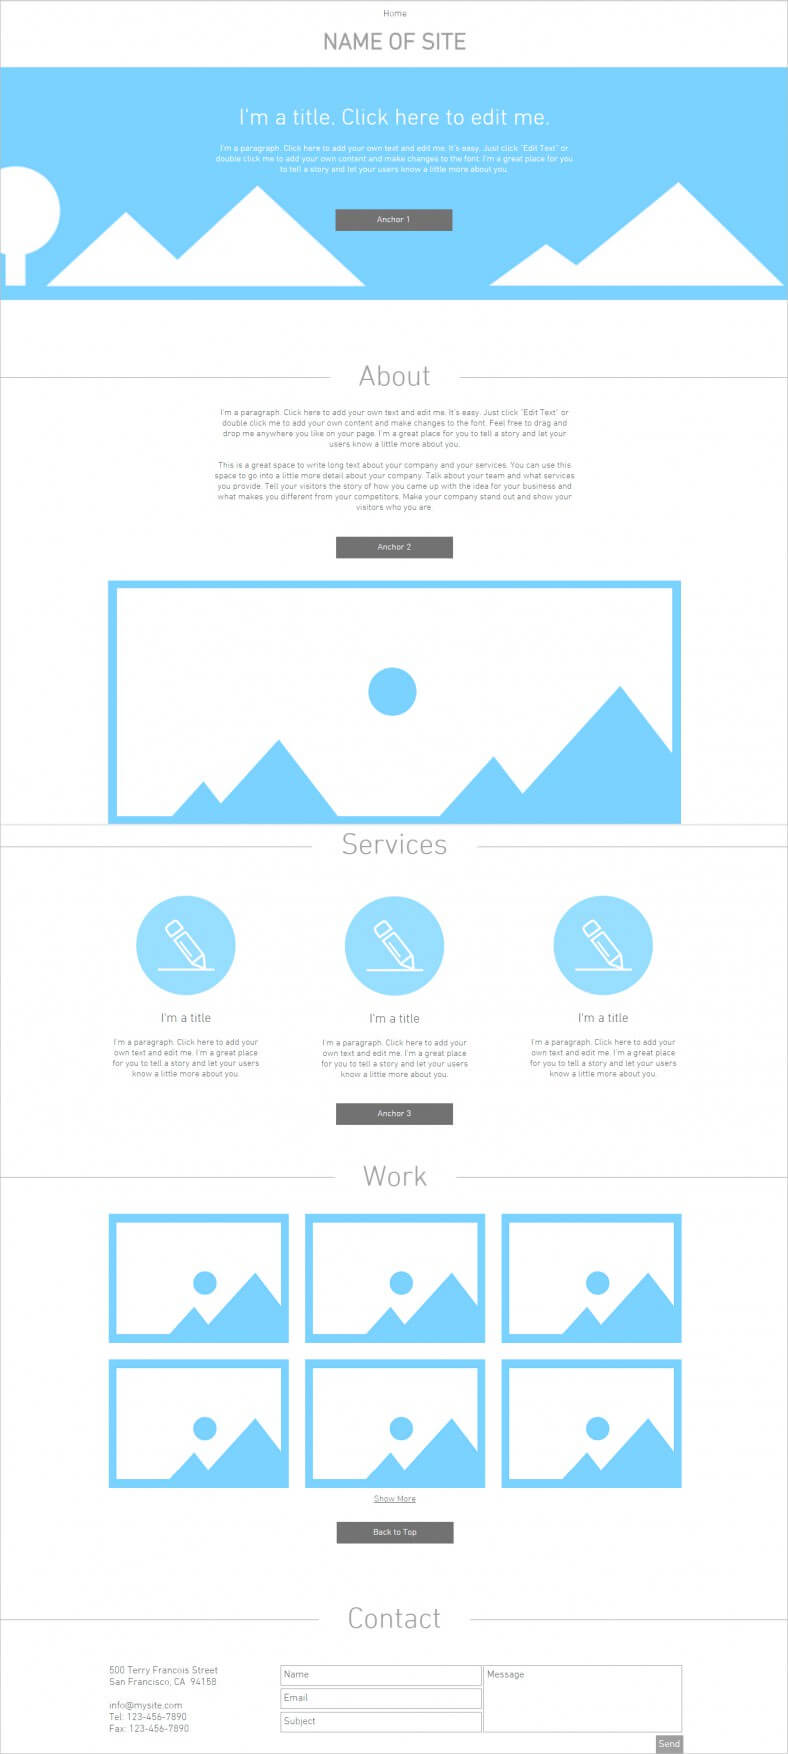 Blank Html5 Website Templates & Themes | Free & Premium Within Html5 Blank Page Template